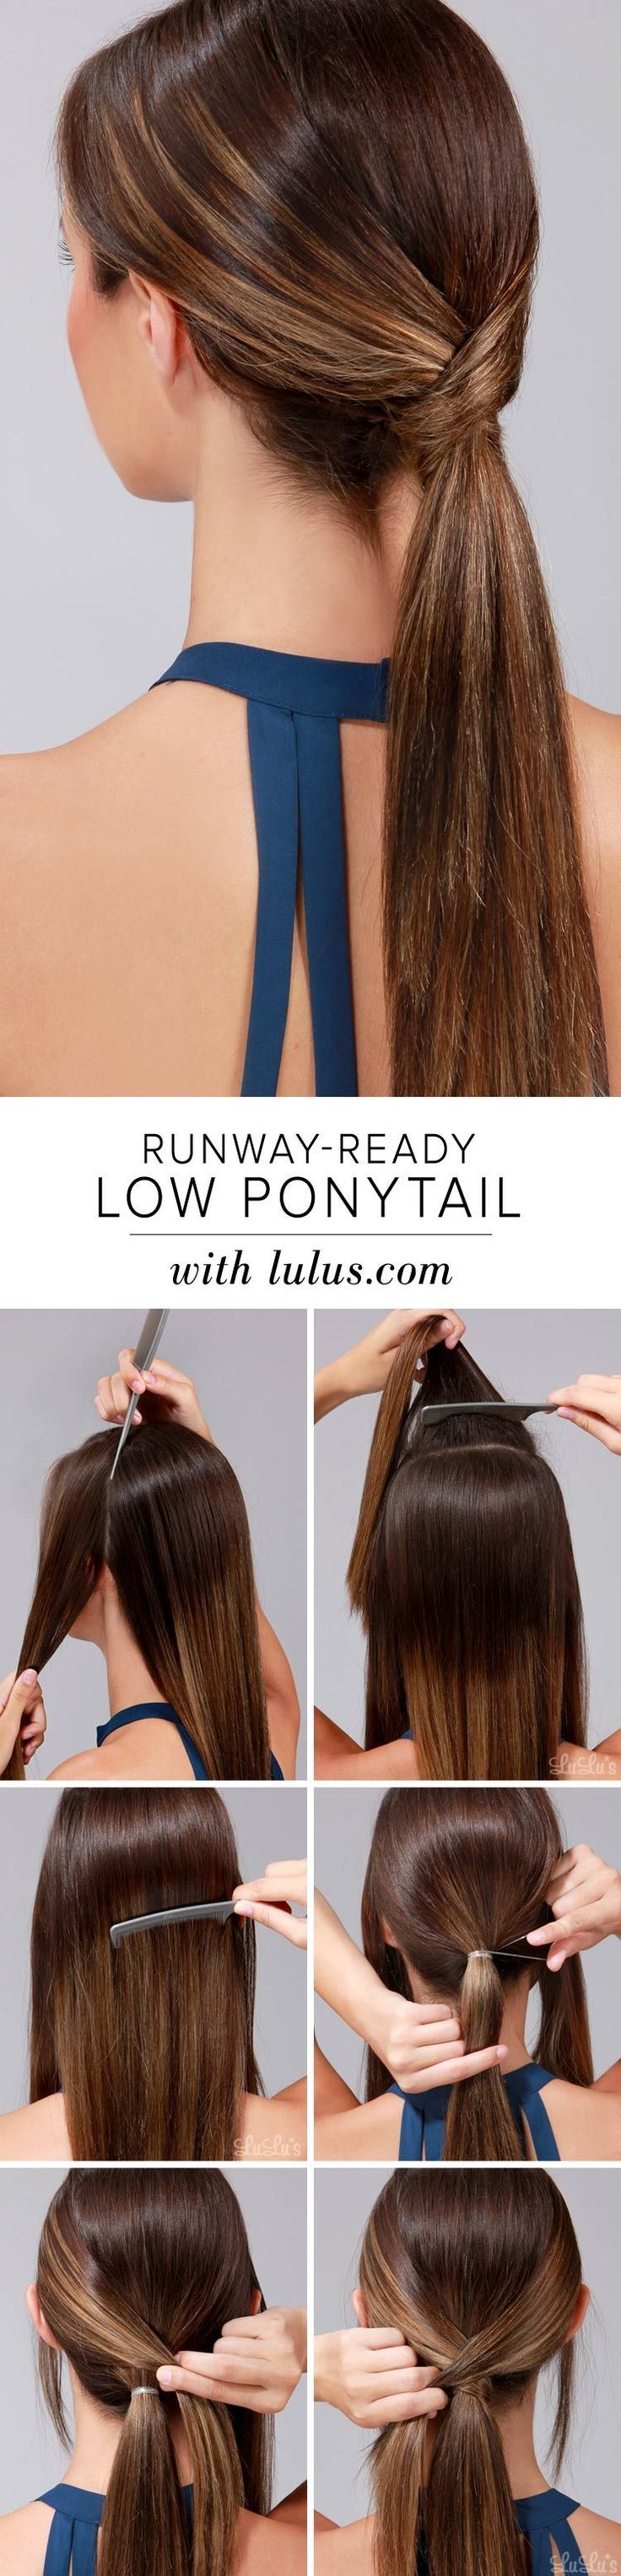 Hair Style Inspiration :   Illustration   Description   Runway-Ready Low Ponytail tutorial    -Read More –   - #HairStyle https://adlmag.net/2017/12/18/hair-style-inspiration-runway-ready-low-ponytail-tutorial/